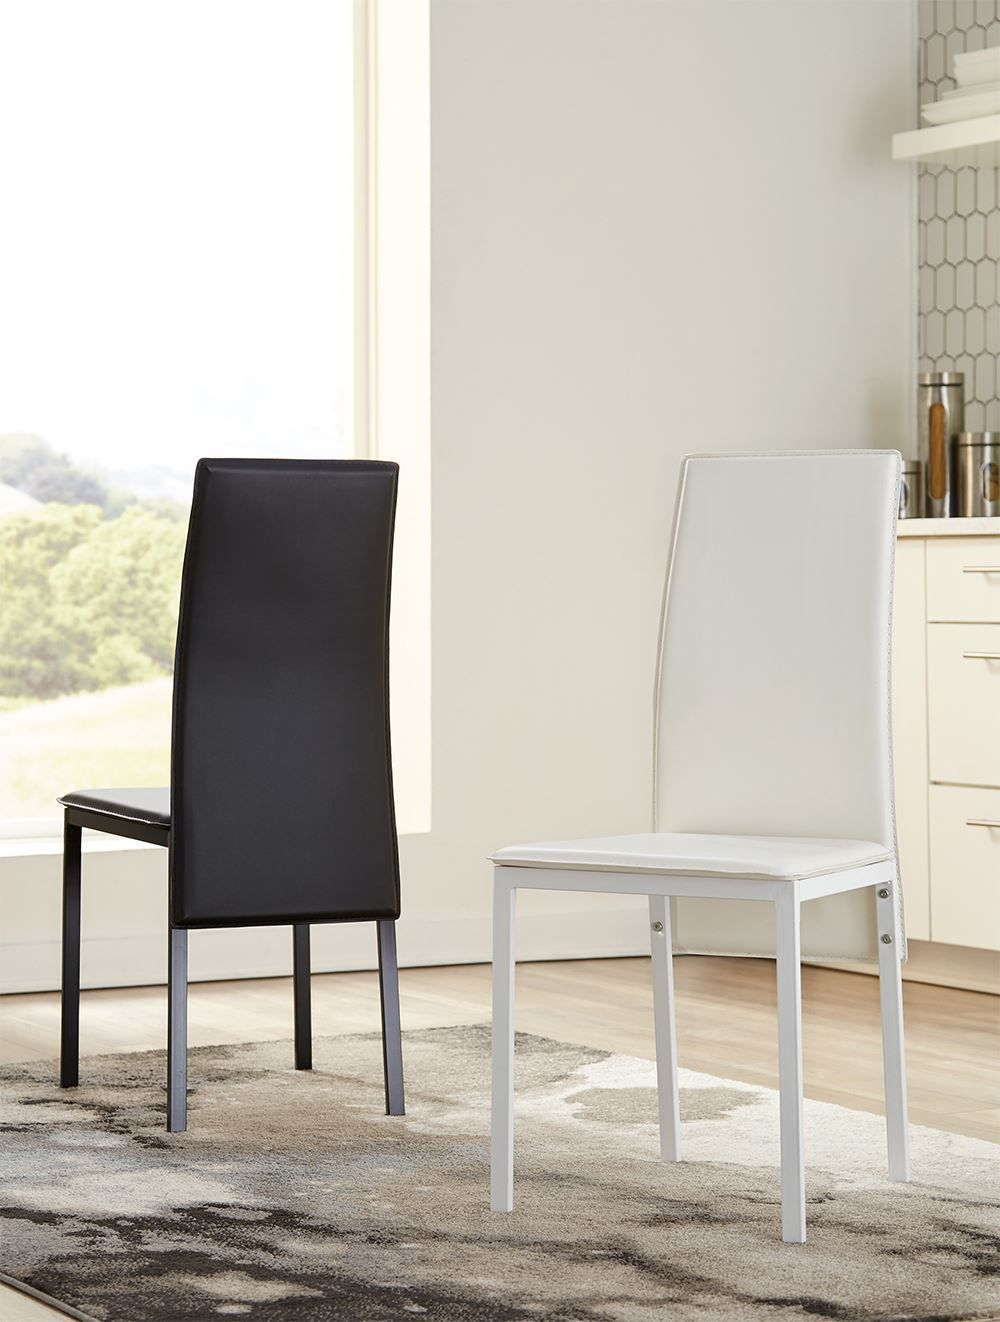 Picture of Sariden Table with Two Black Chairs and Two White Chairs